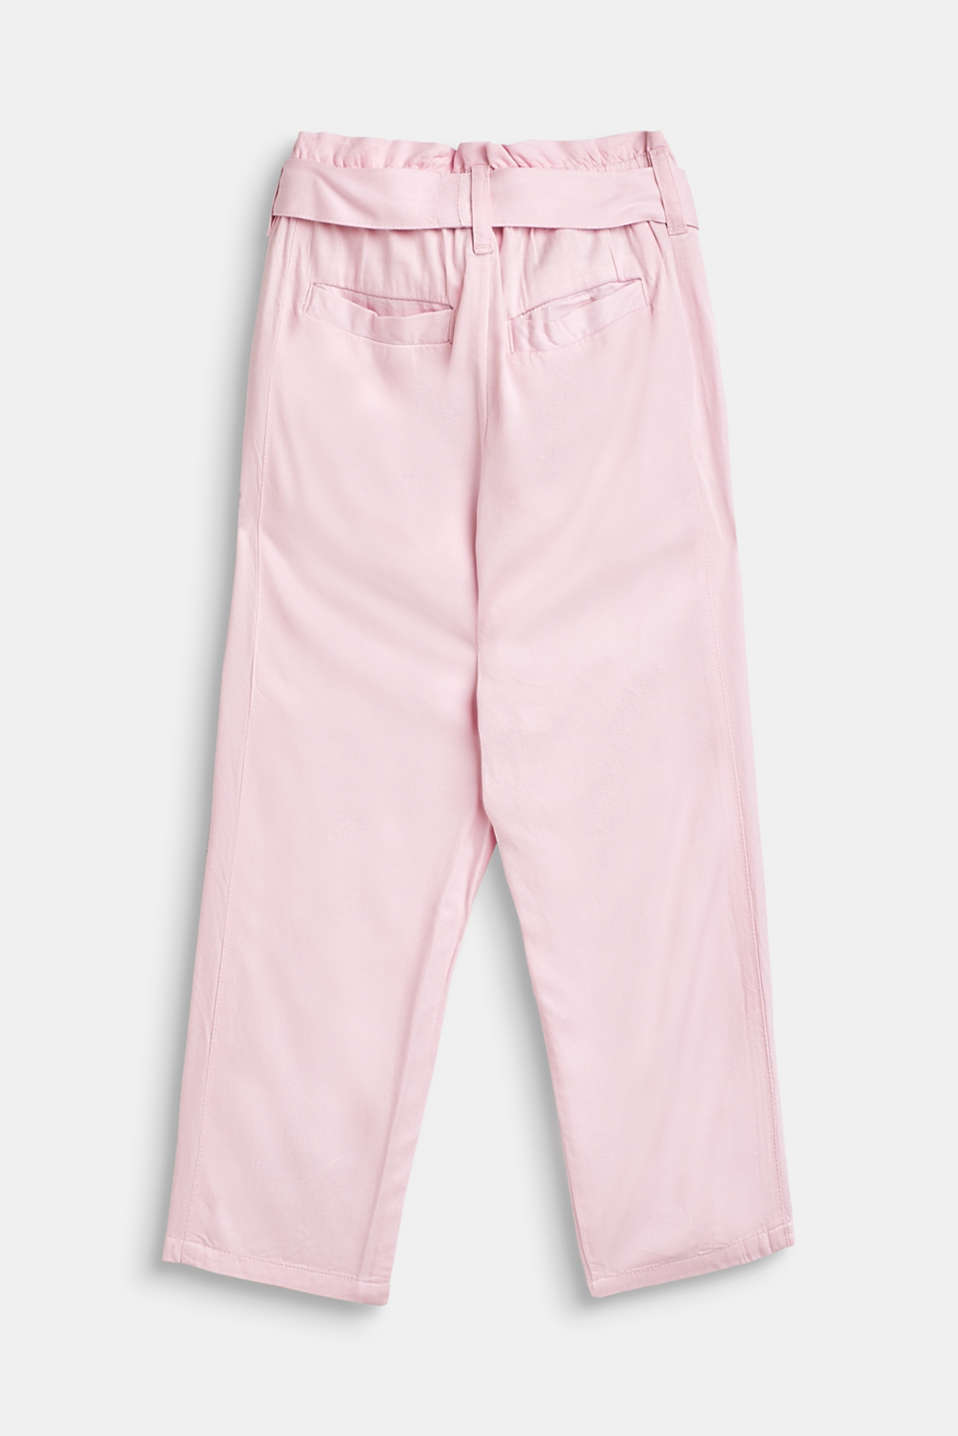 Flowing trousers in a paper bag style, BLUSH, detail image number 1